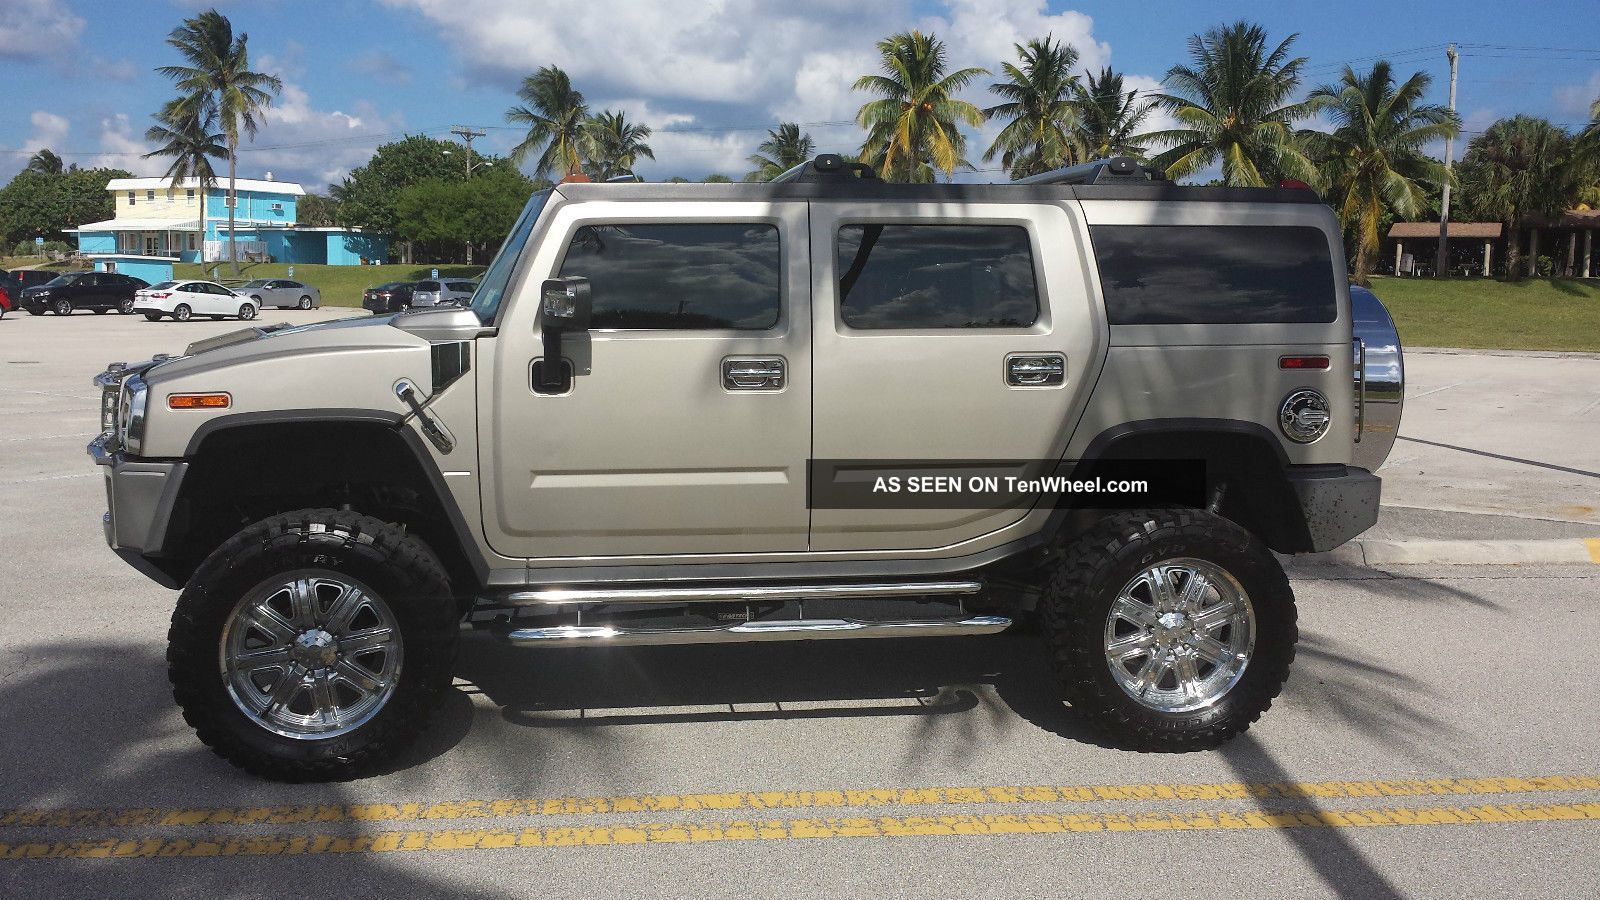 Pewter Metallic 2006 H2 Hummer H2 photo